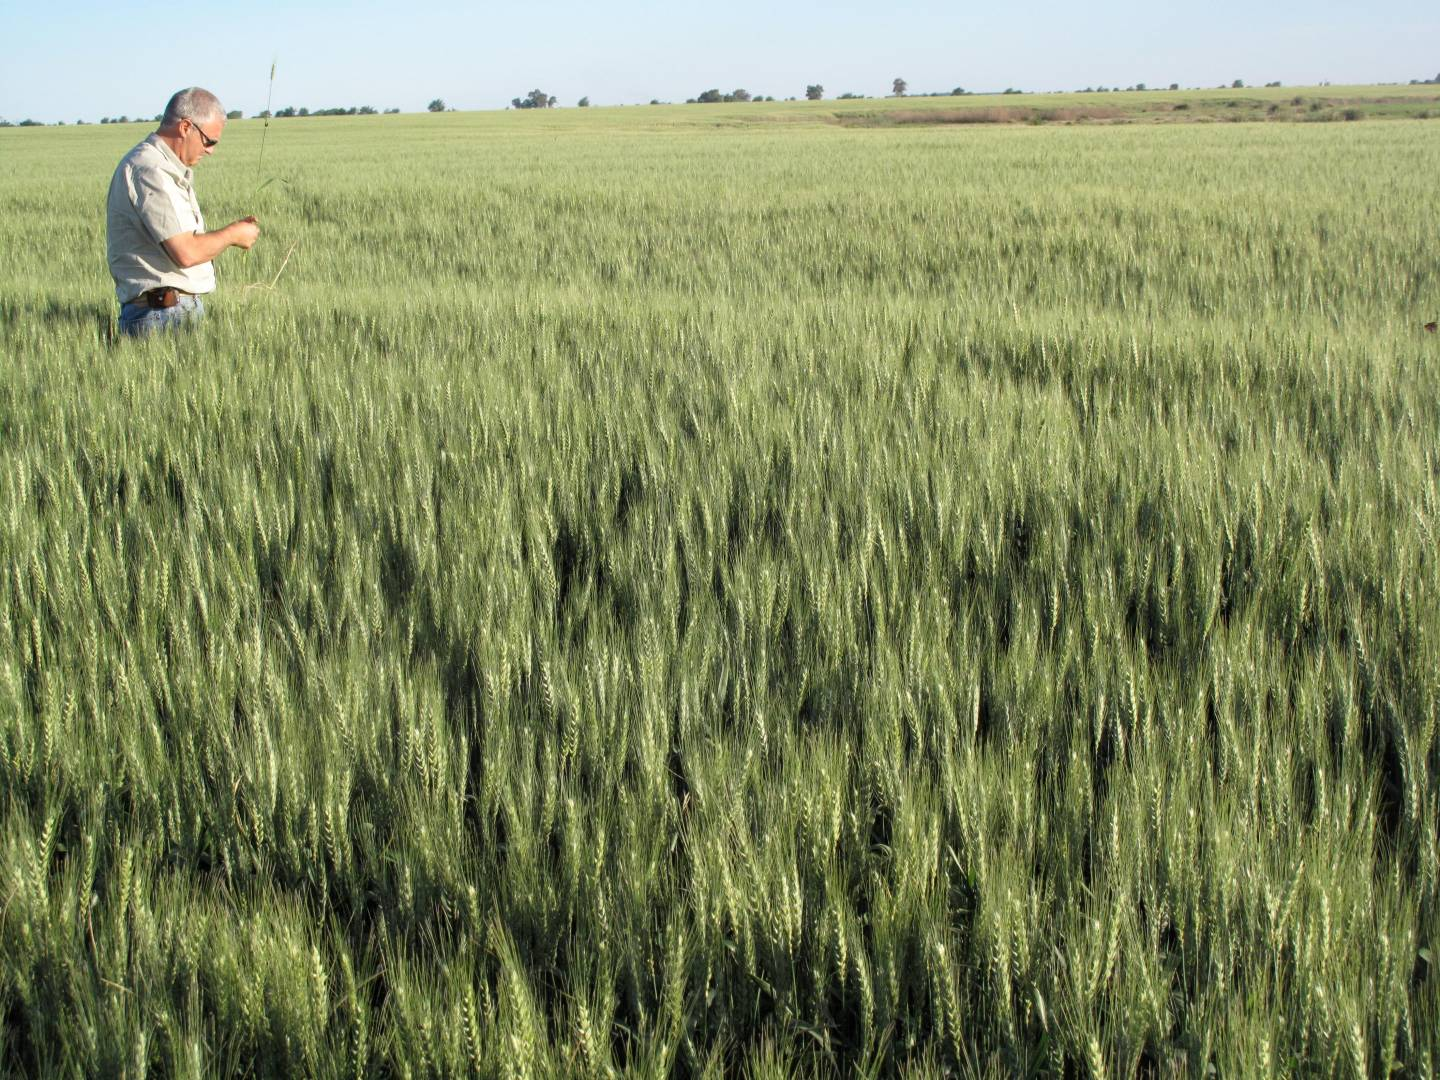 Alejandro, inspecting his wheat crop.